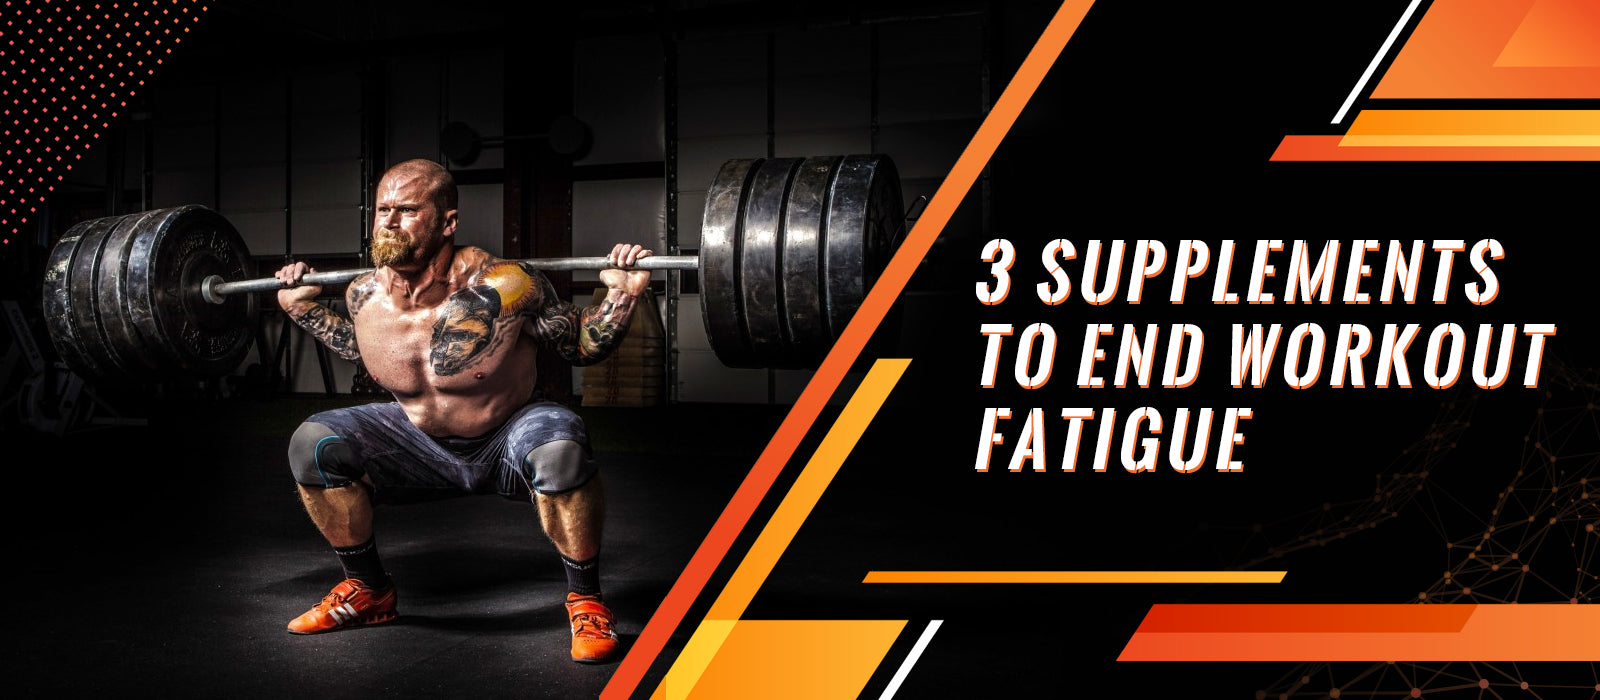 3 Supplements To End Workout Fatigue